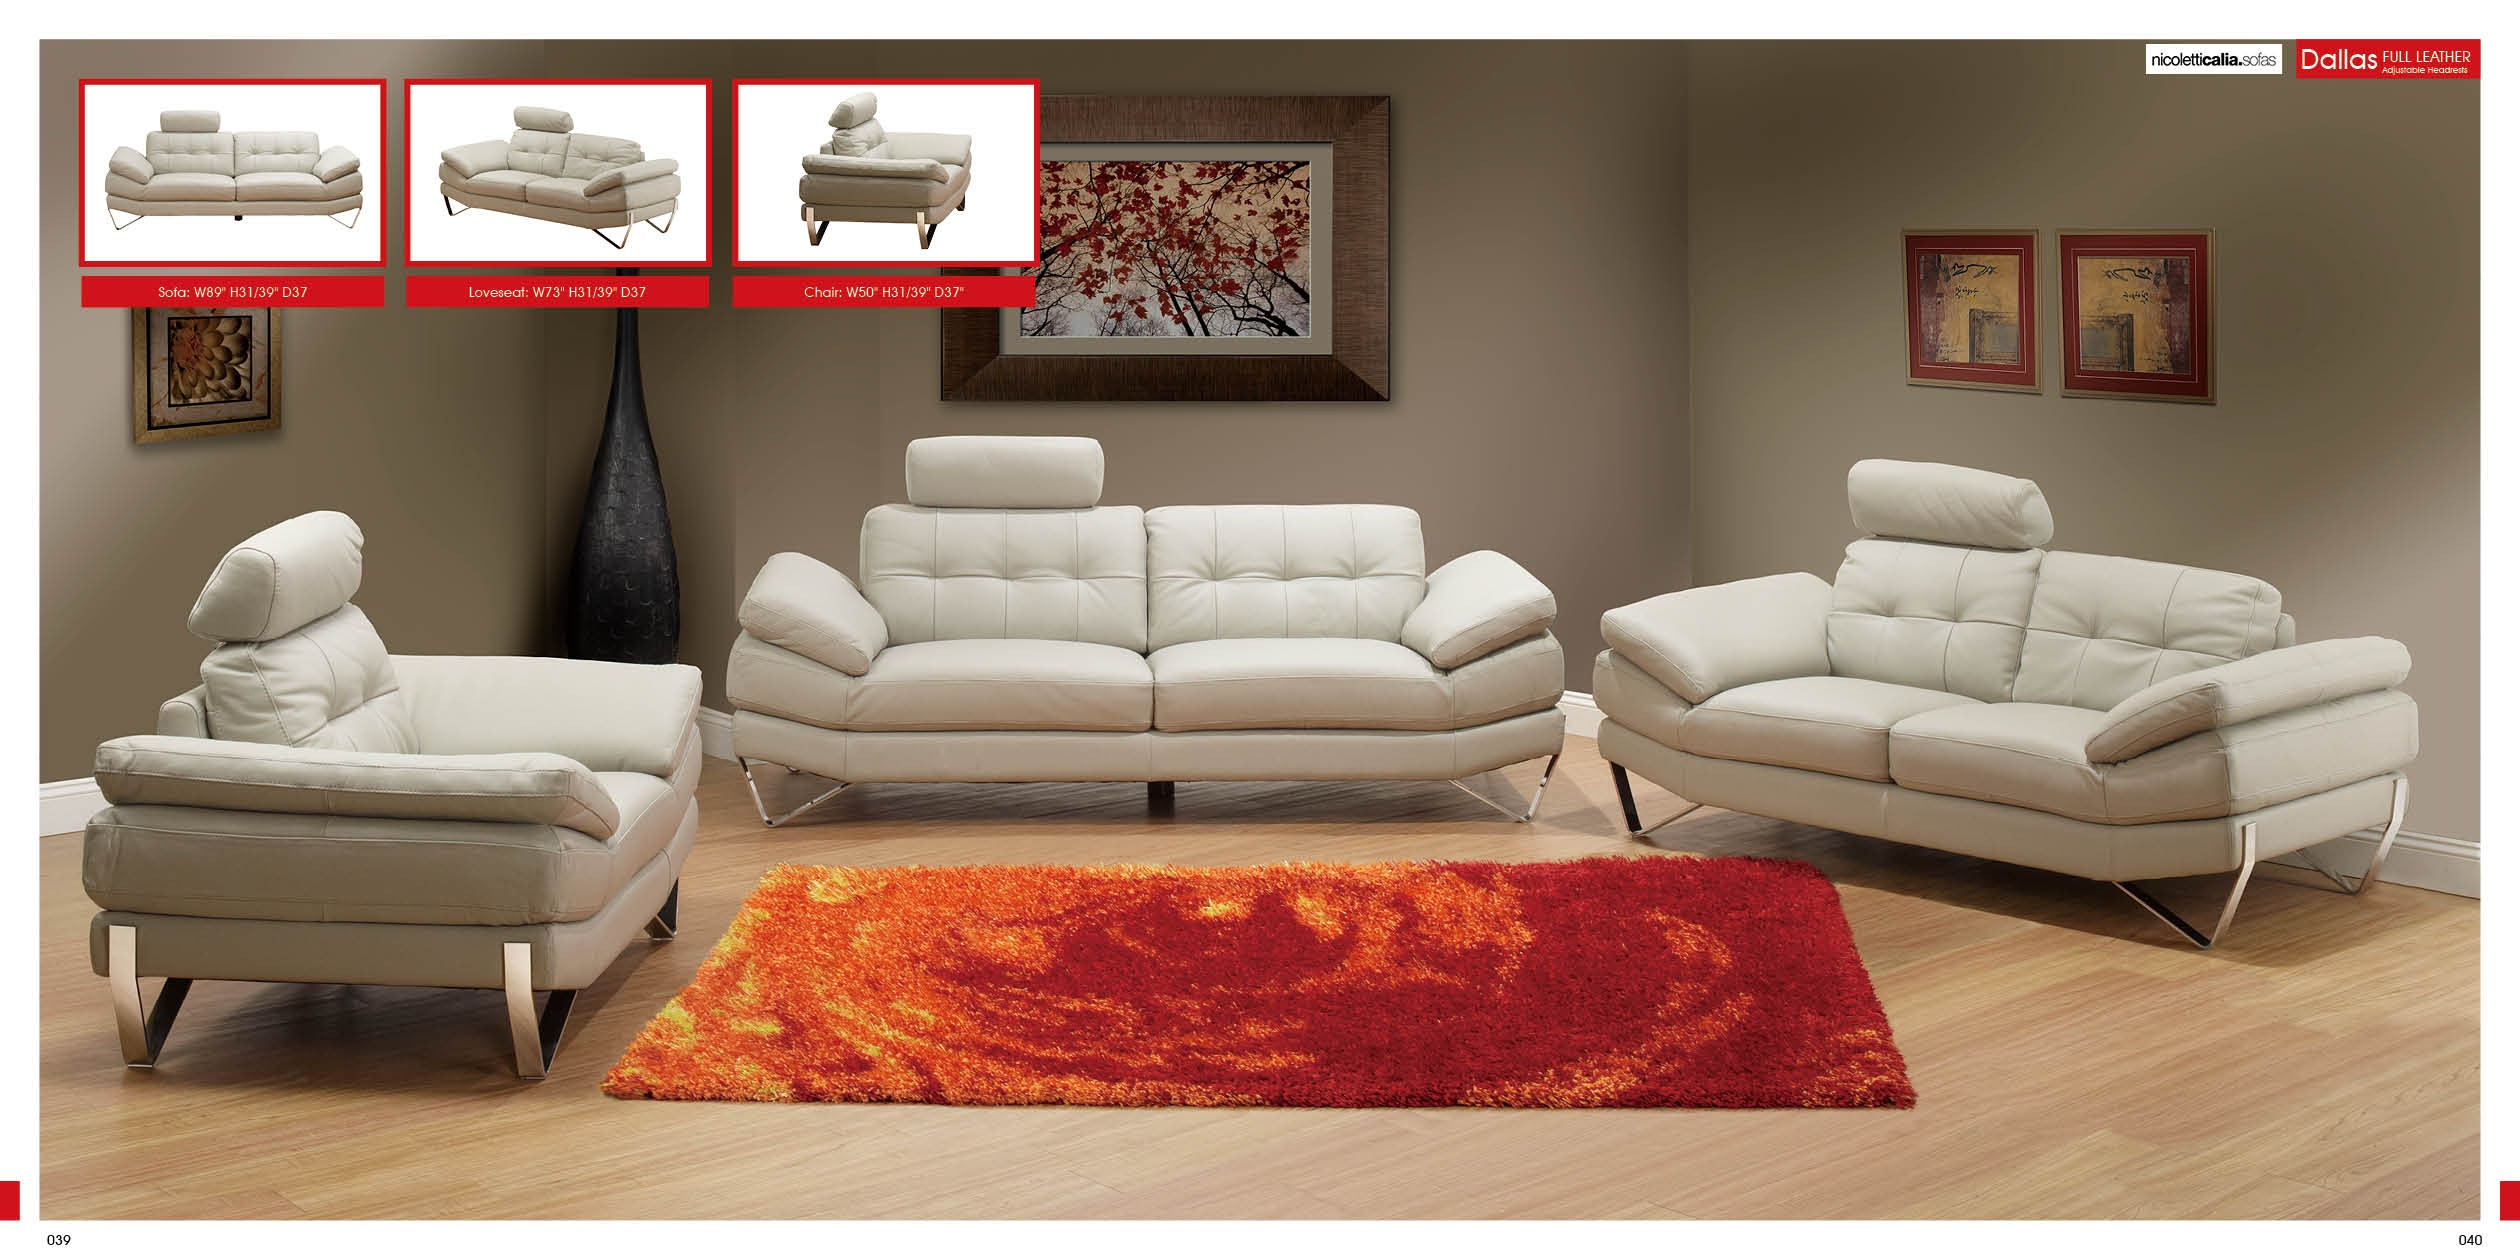 Charming Dallas Sofa Set By Nicoletti